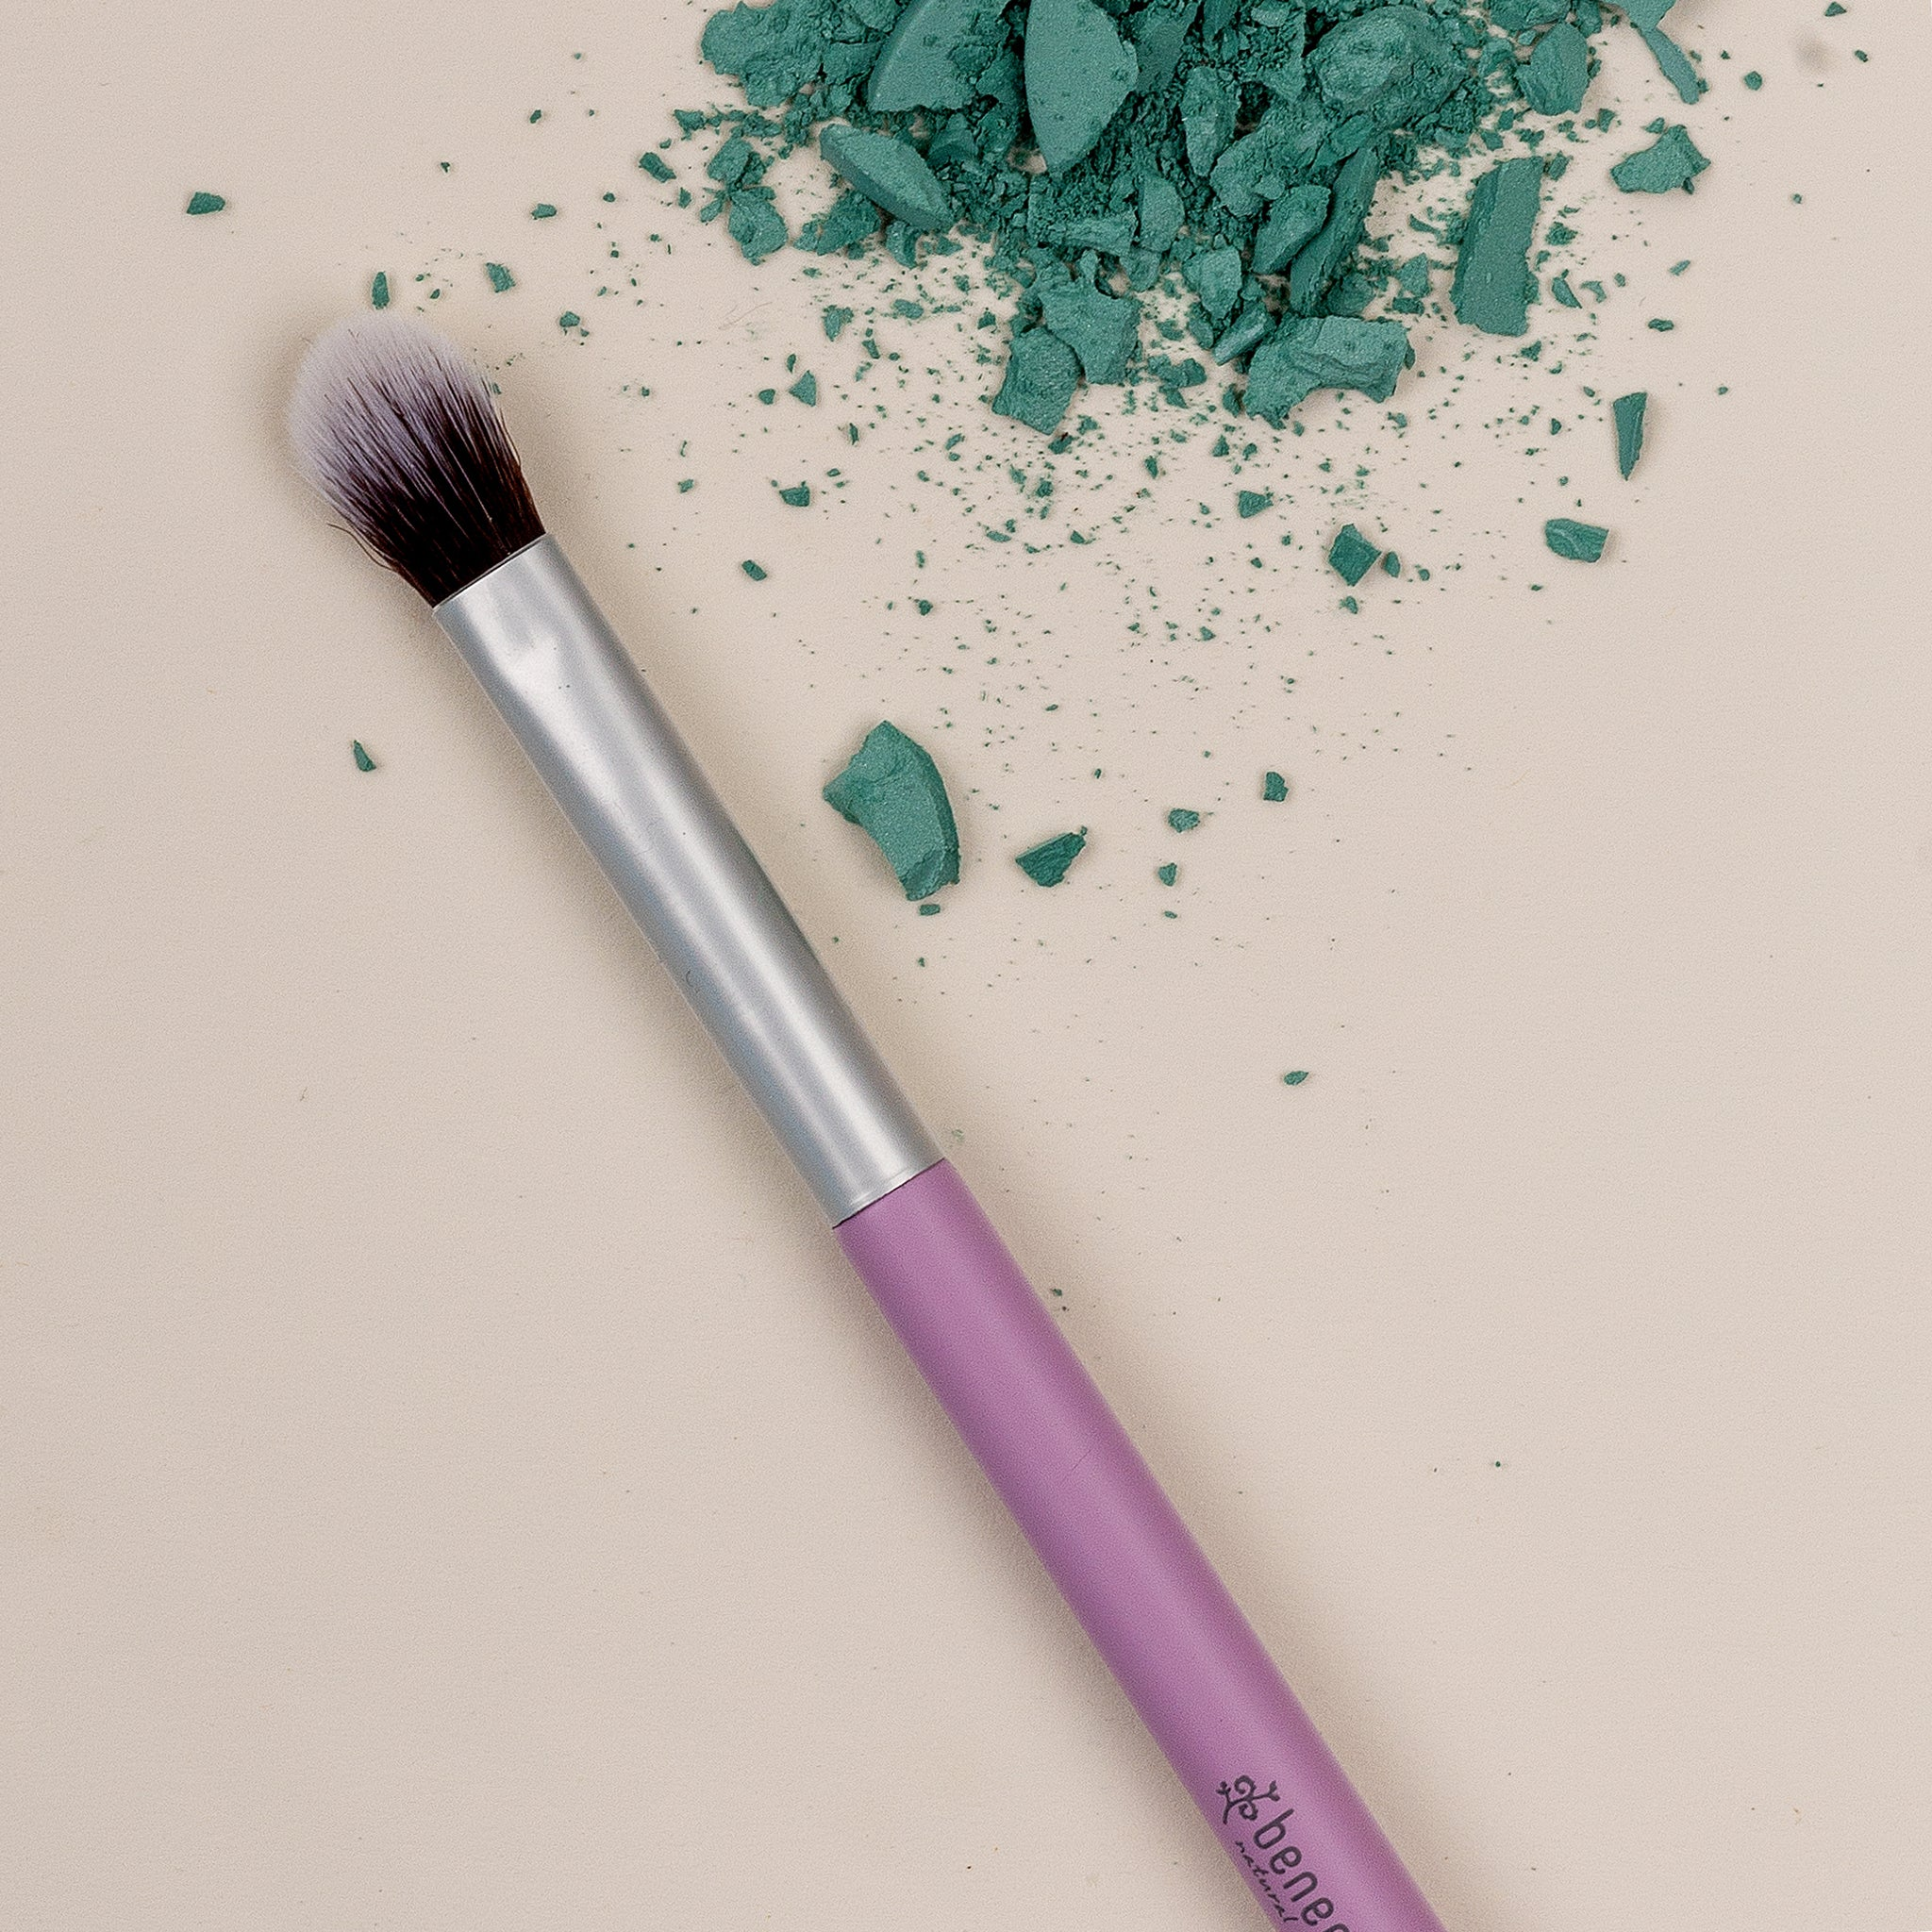 Benecos Blending Brush